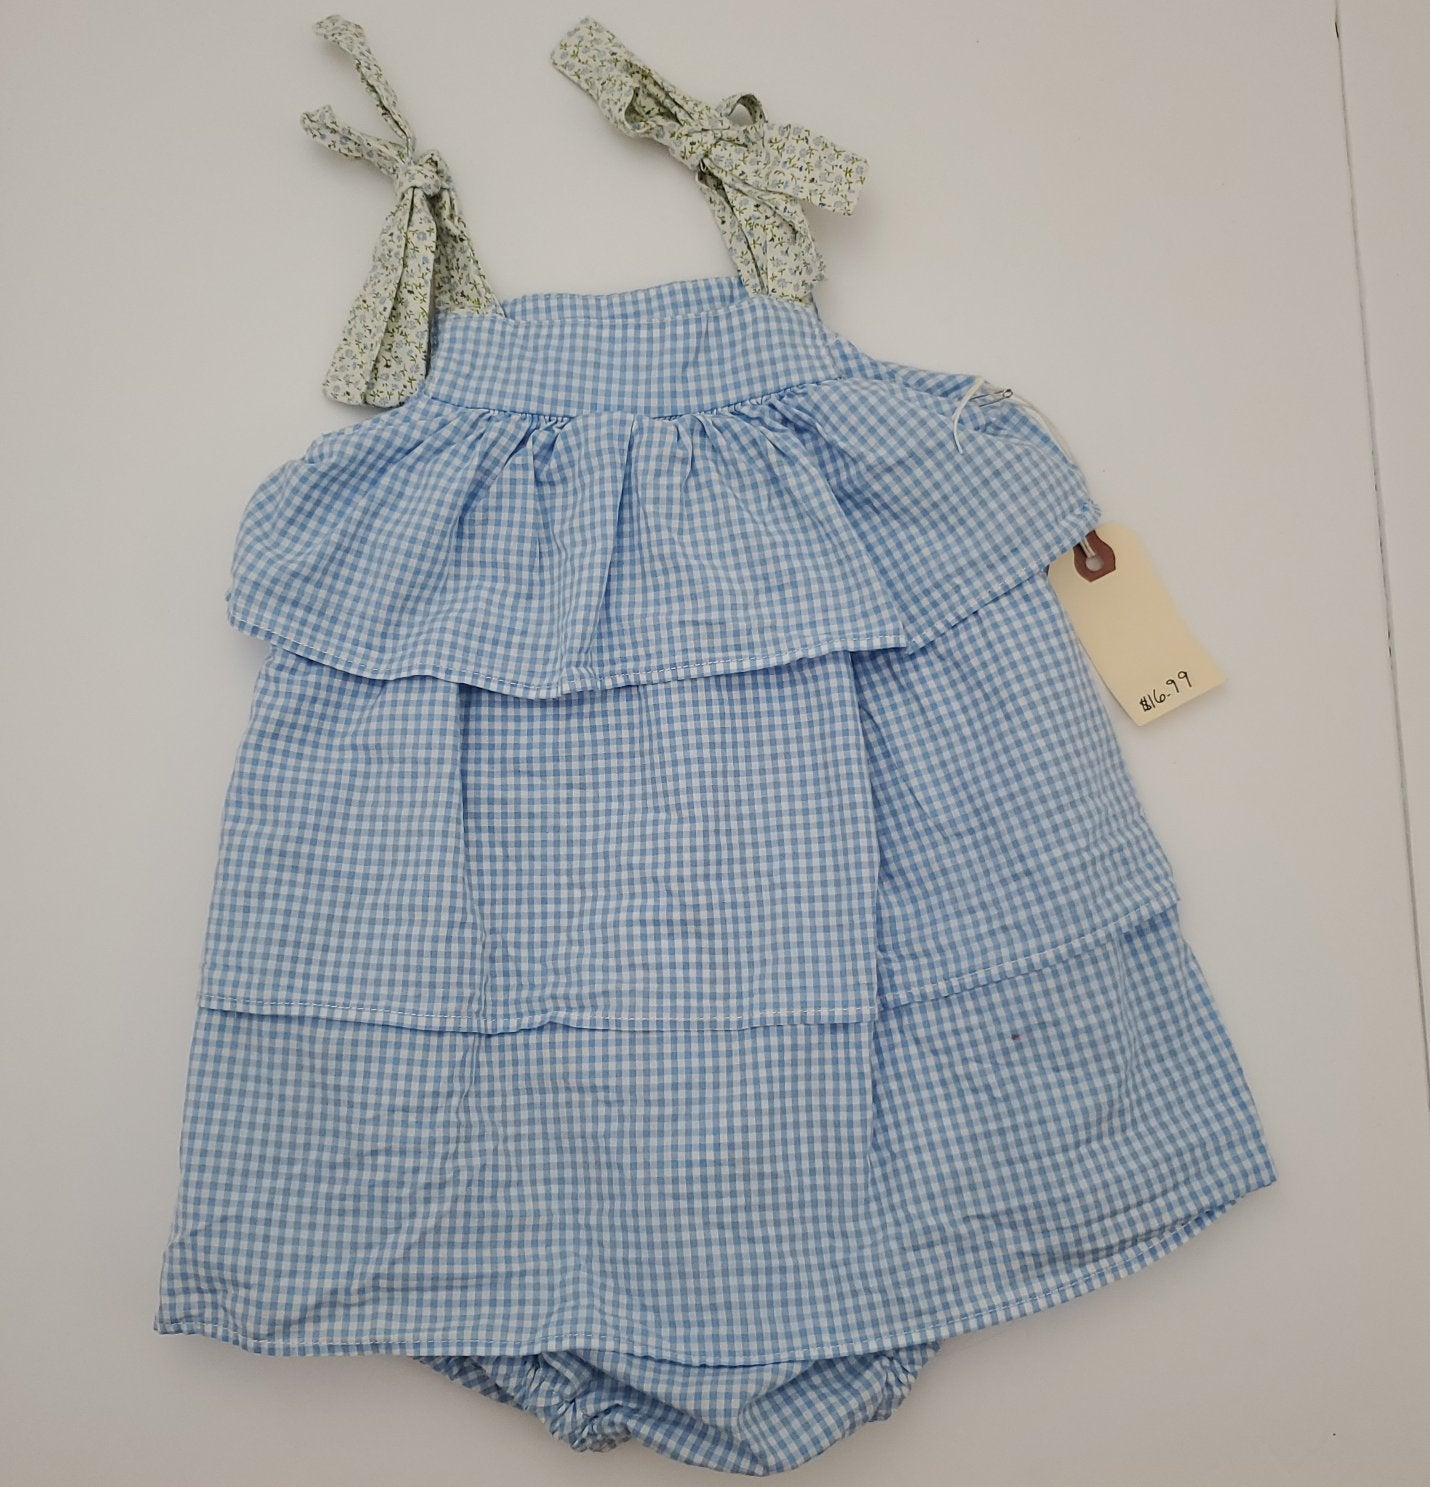 Resale 2T Alice Kathleen & Co Blue Gingham Romper